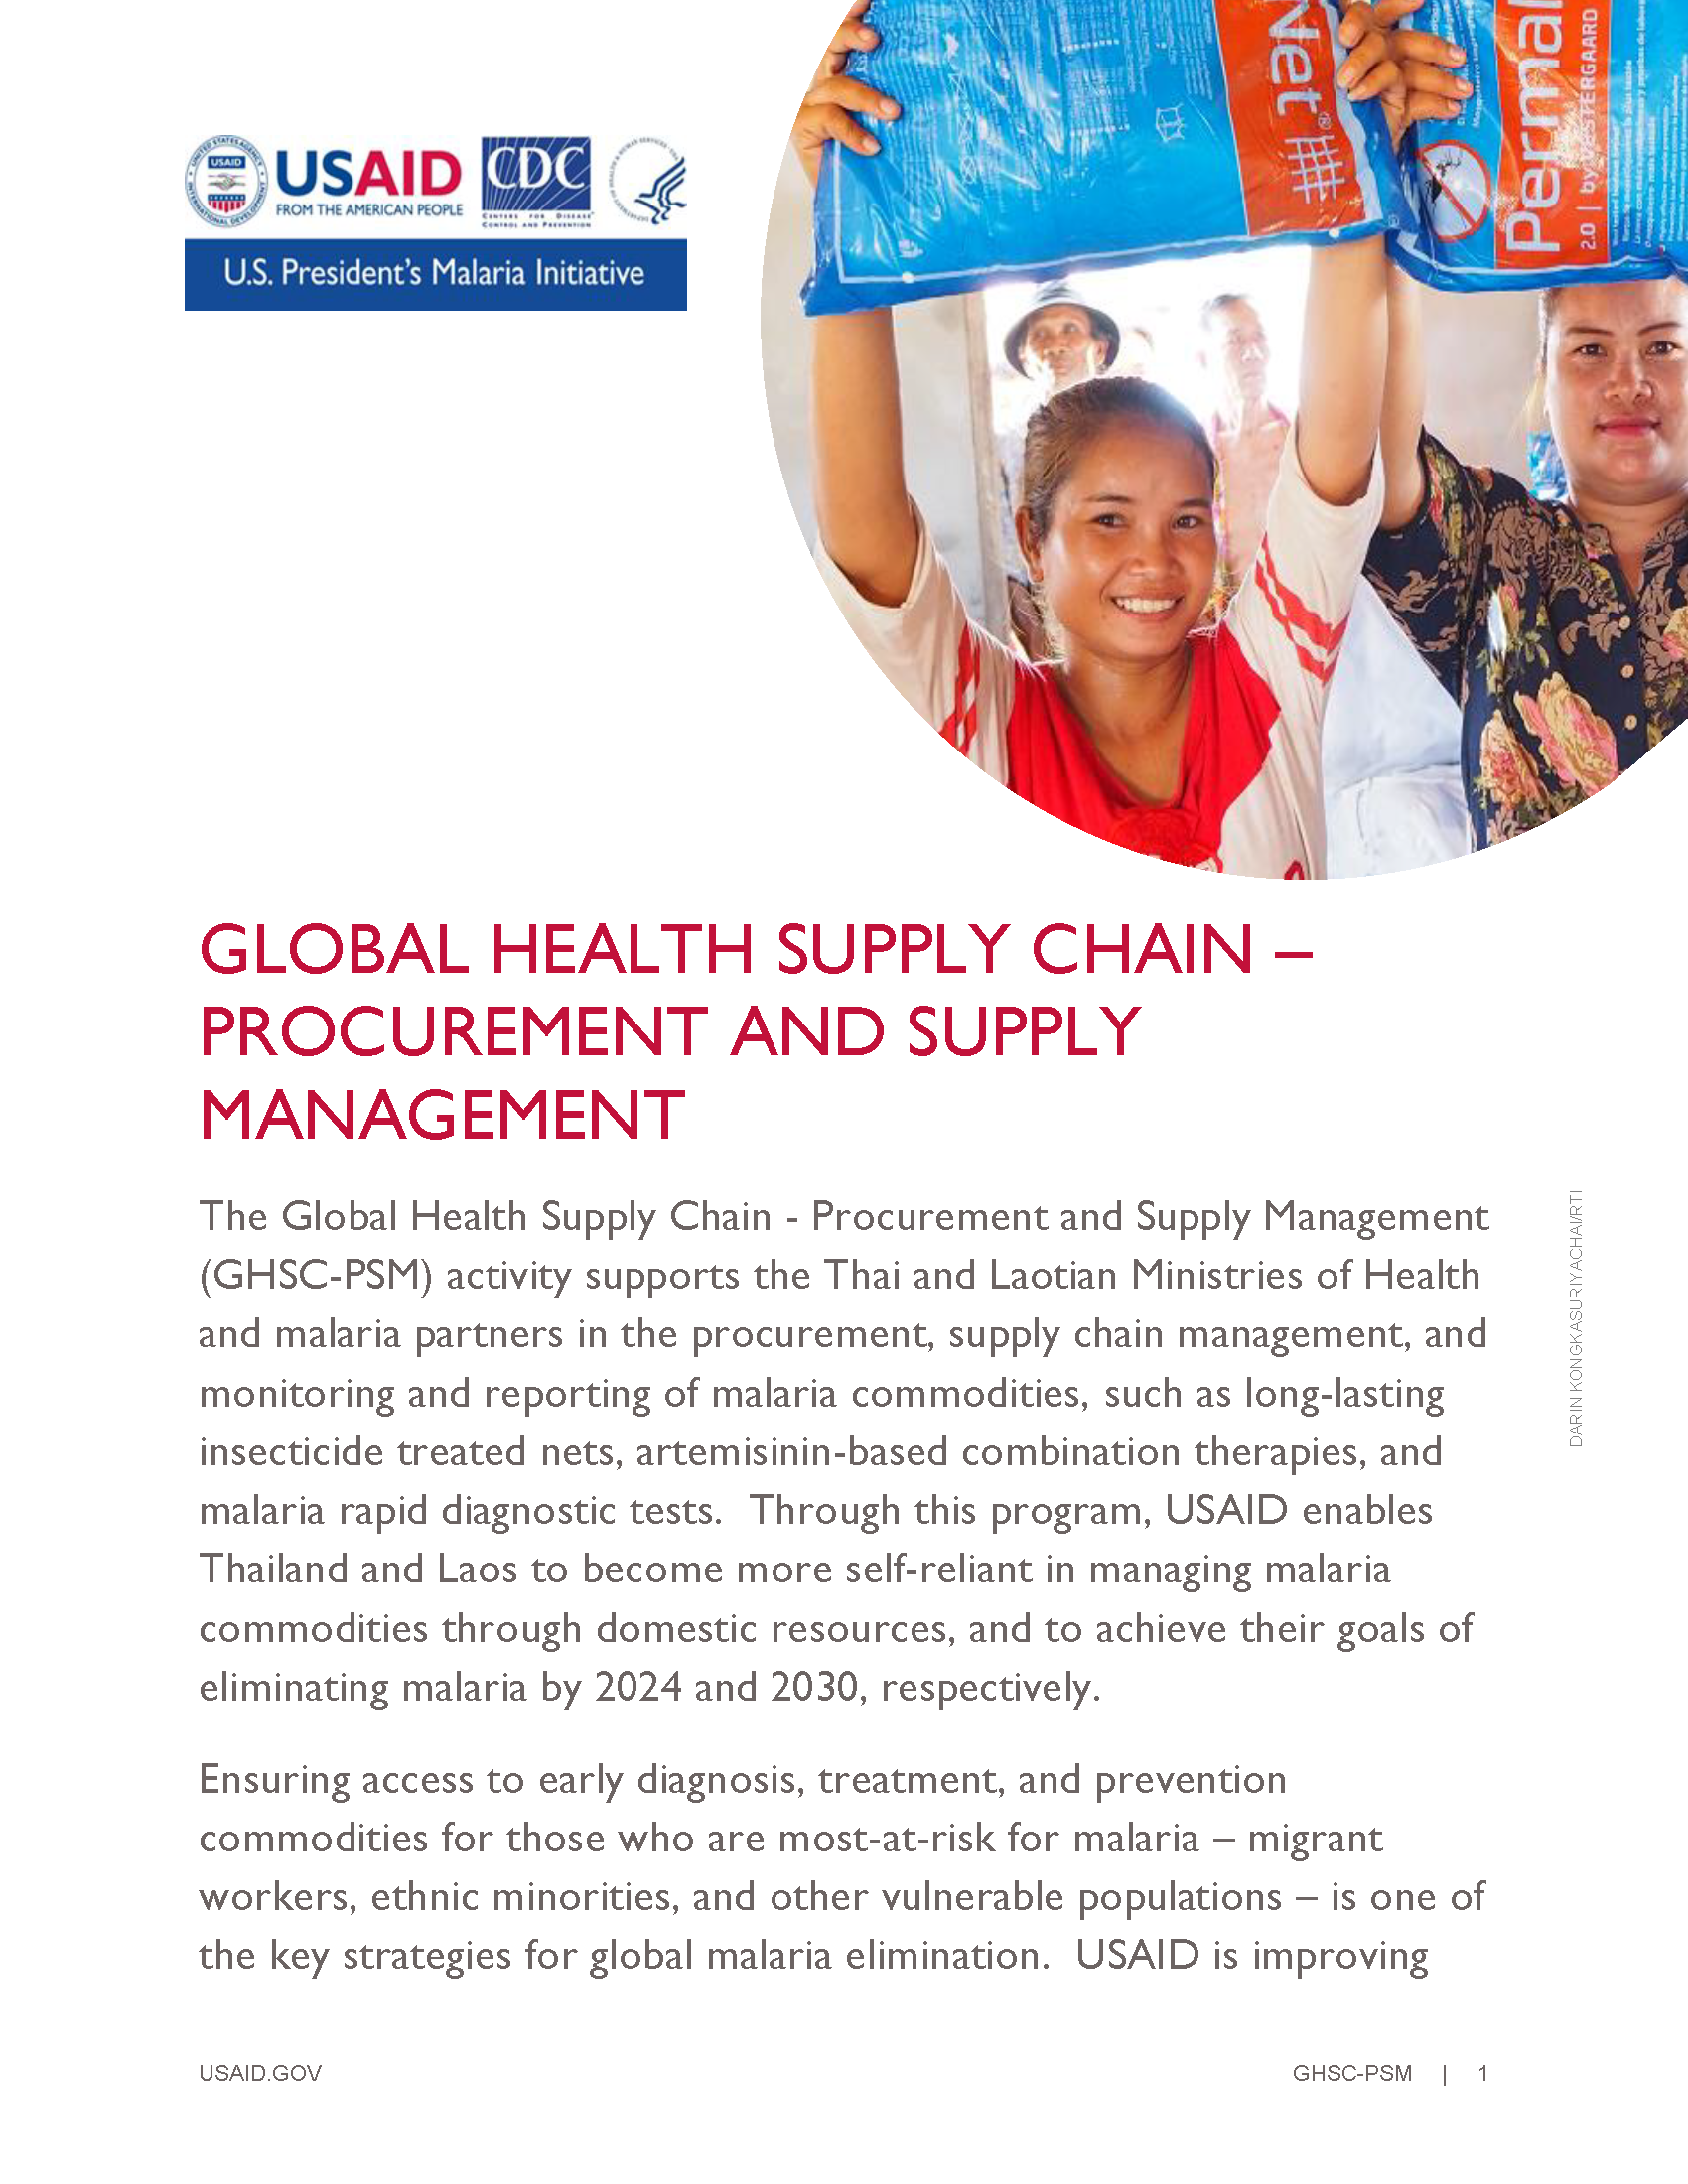 The Global Health Supply Chain - Procurement and Supply Management Fact Sheet